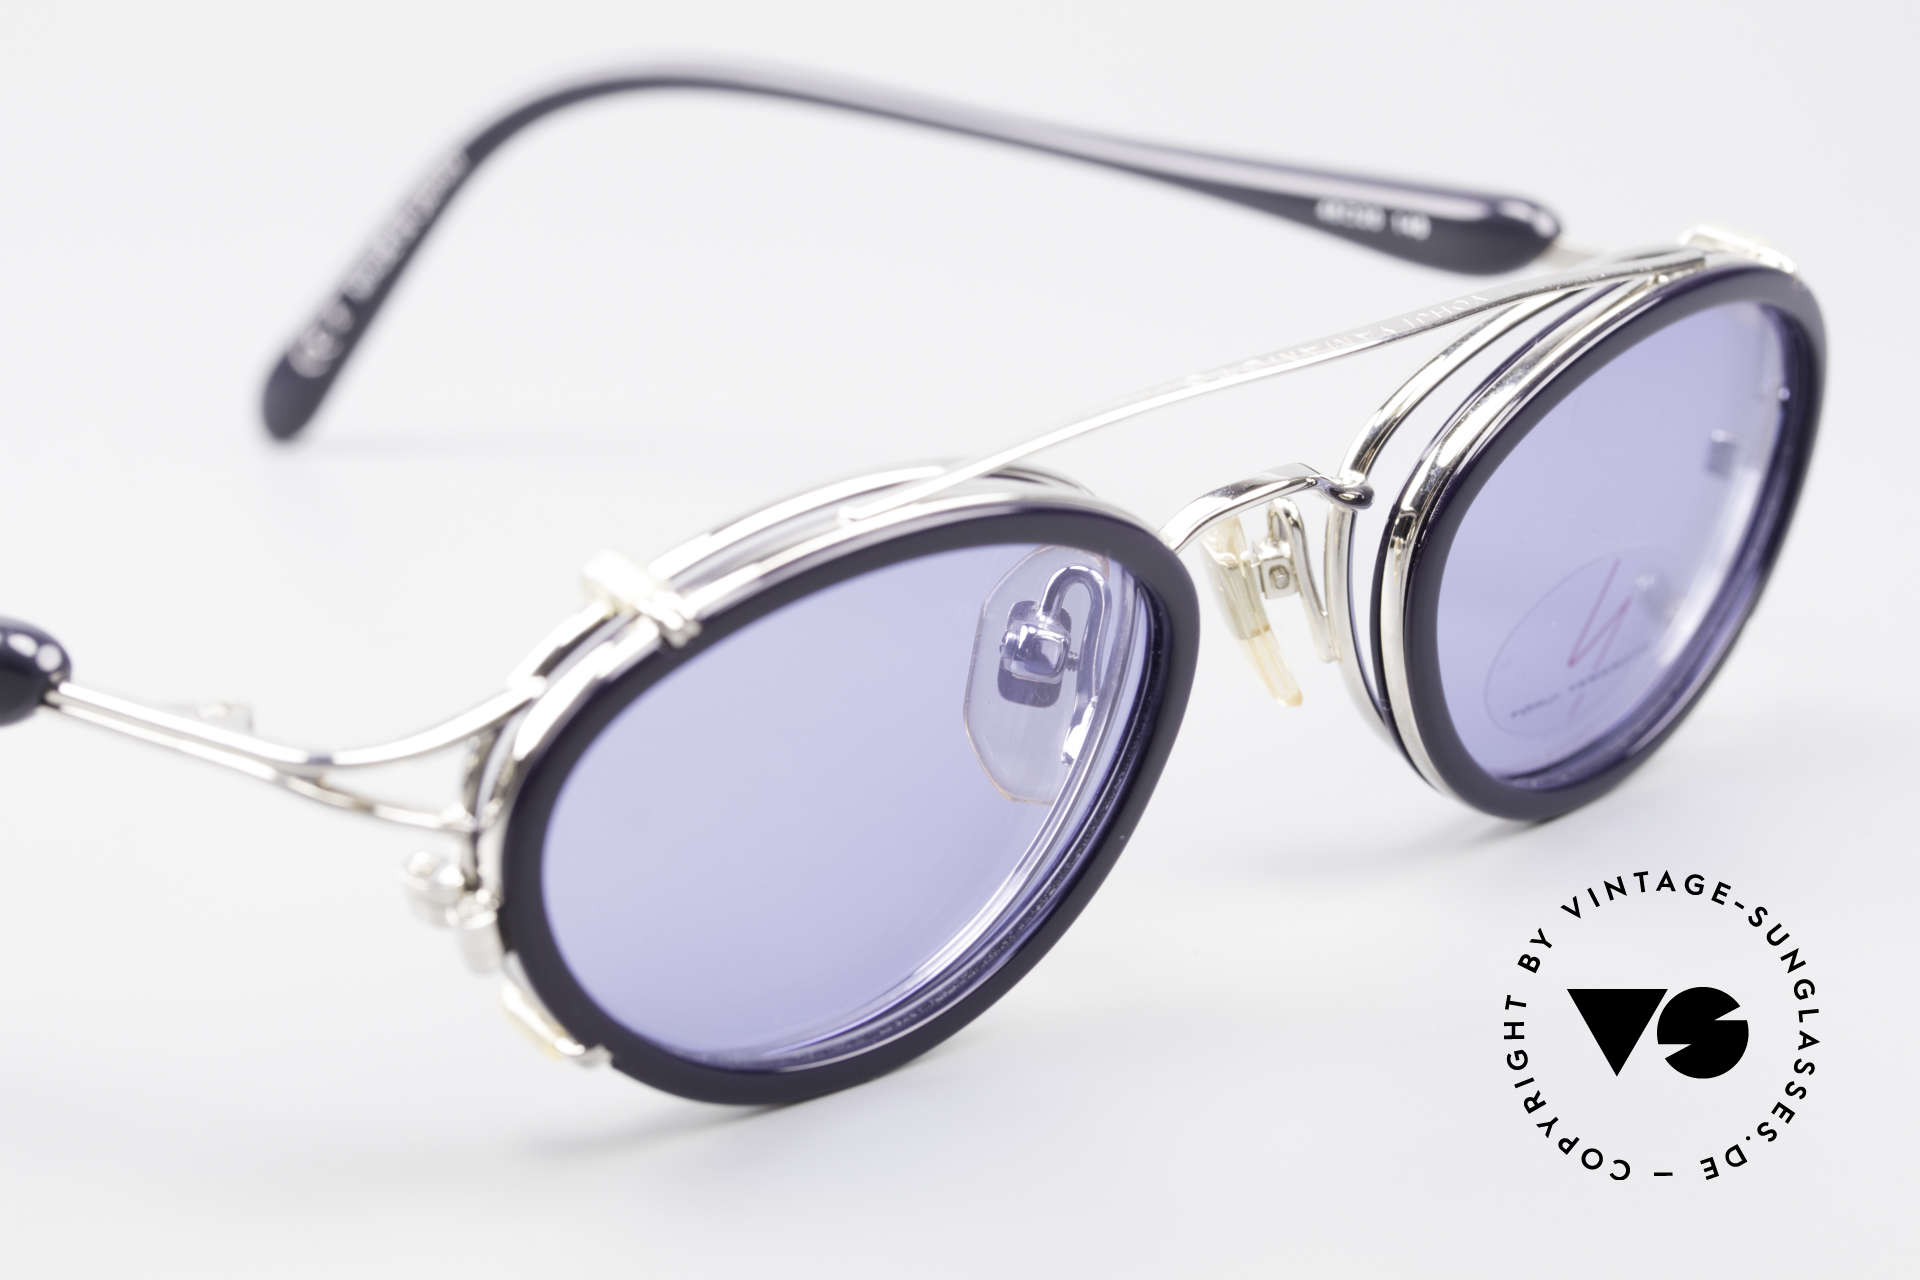 Yohji Yamamoto 51-7210 Clip-On 90's No Retro Shades, NO retro specs, but a 25 years old Yamamoto original, Made for Men and Women